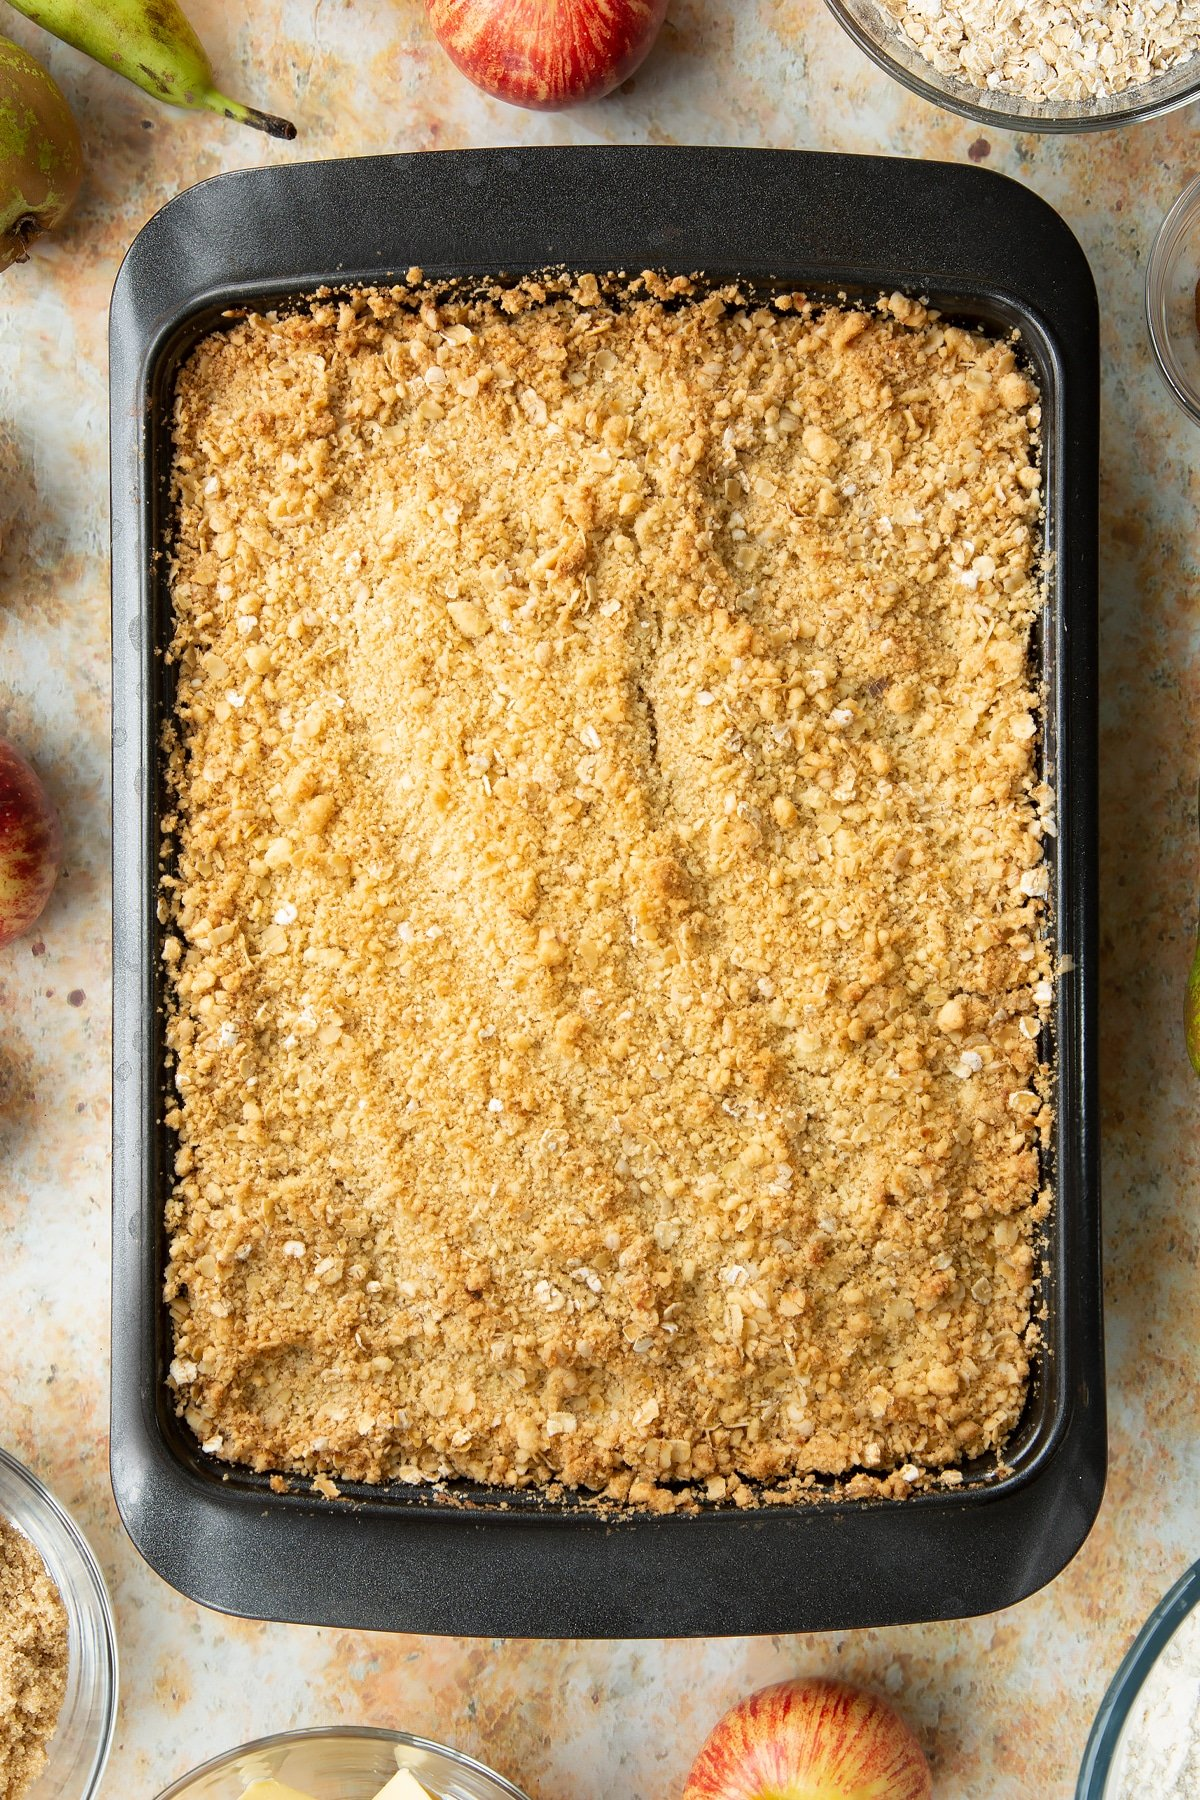 Freshly baked apple and pear crumble in a metal tray.